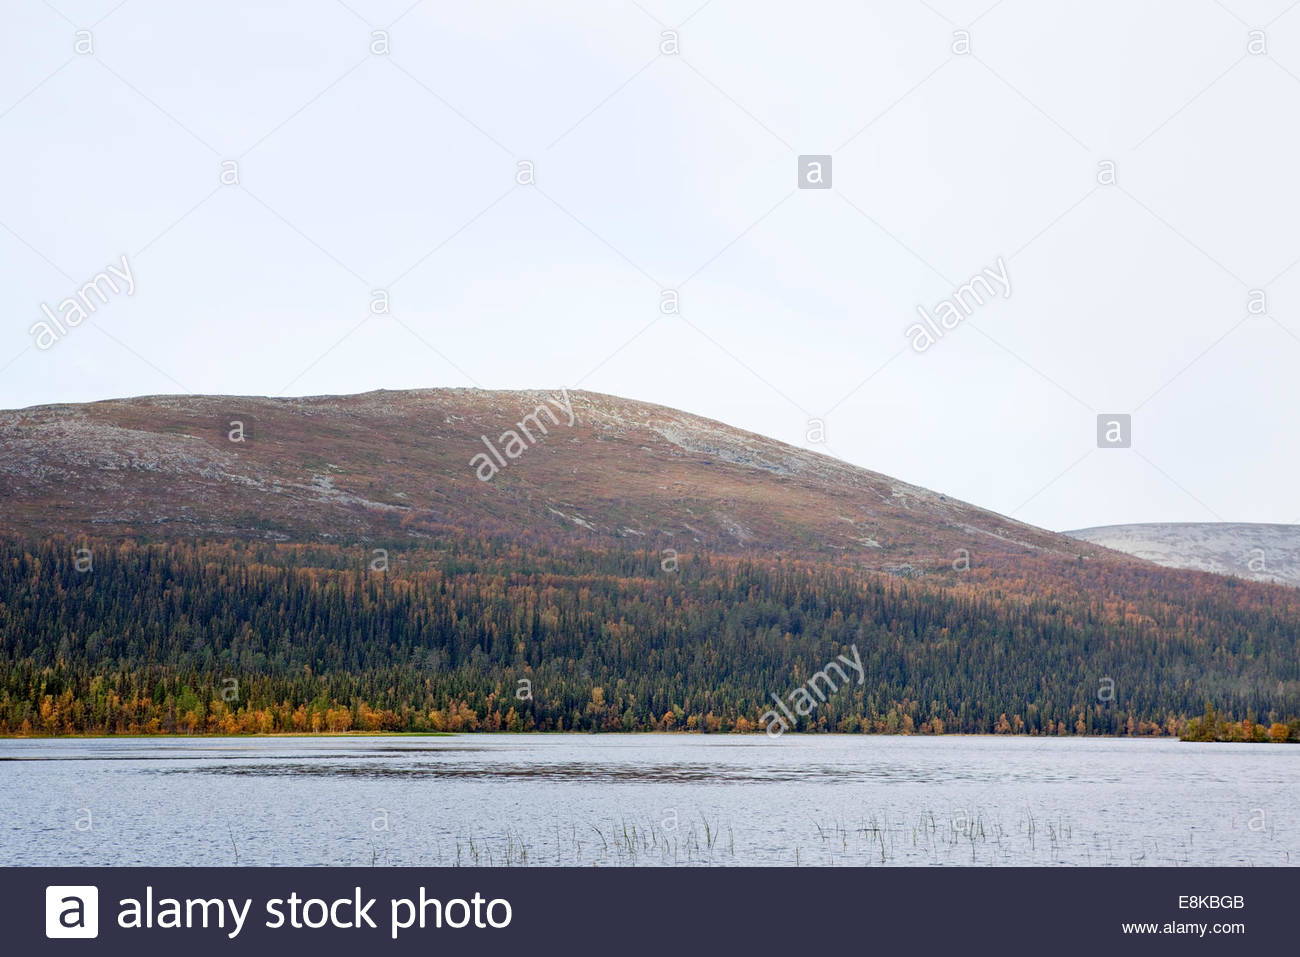 Fell at Finnish Lapland in fall - Stock Image